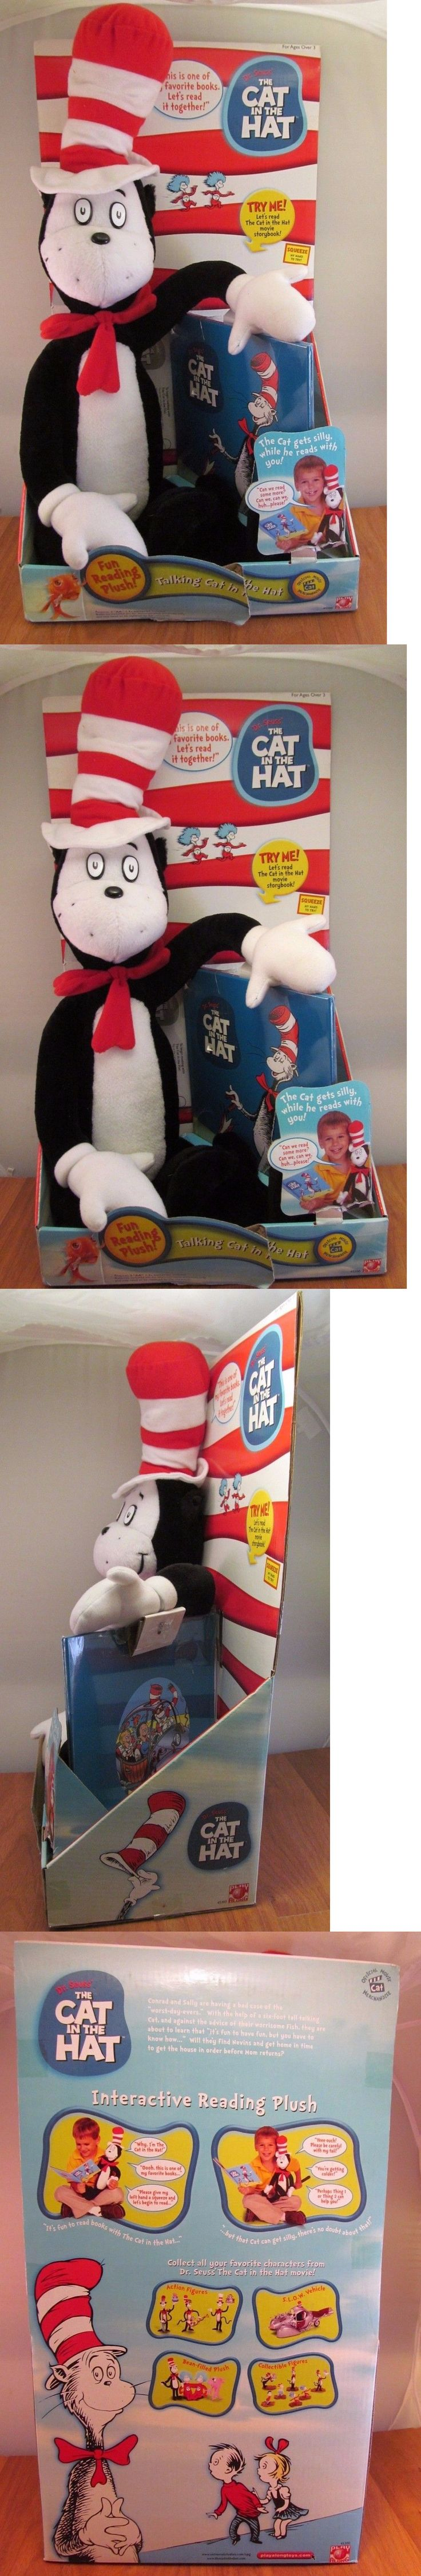 Dr Seuss 20906: Dr Seuss Cat In The Hat Plush Talking Cat Reads Whole Book Rare Htf Nip -> BUY IT NOW ONLY: $109.49 on eBay!